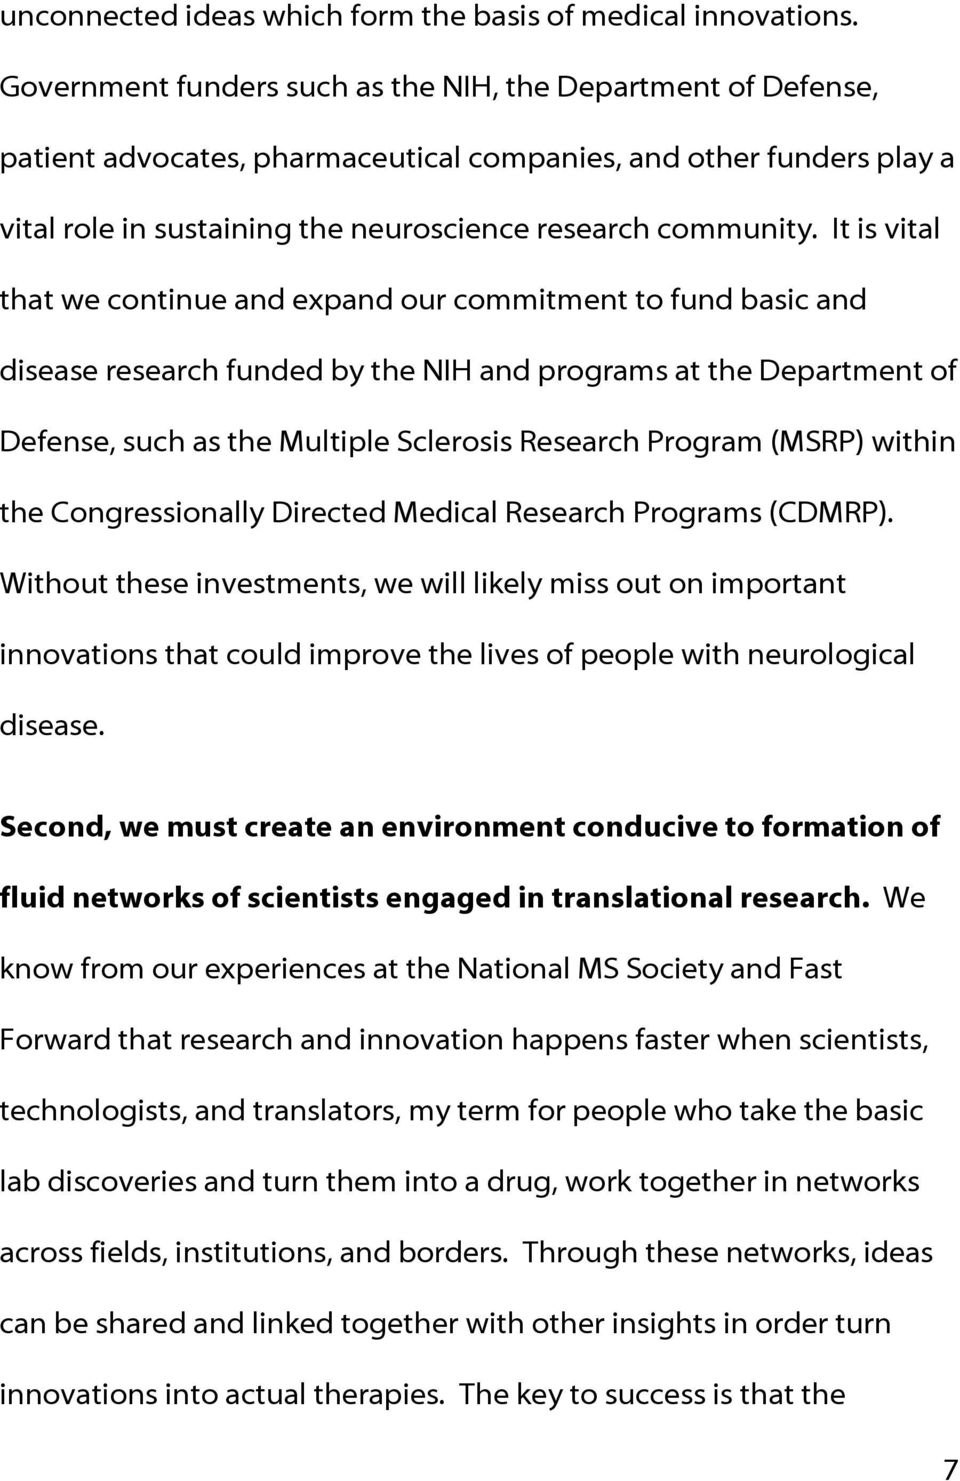 It is vital that we continue and expand our commitment to fund basic and disease research funded by the NIH and programs at the Department of Defense, such as the Multiple Sclerosis Research Program